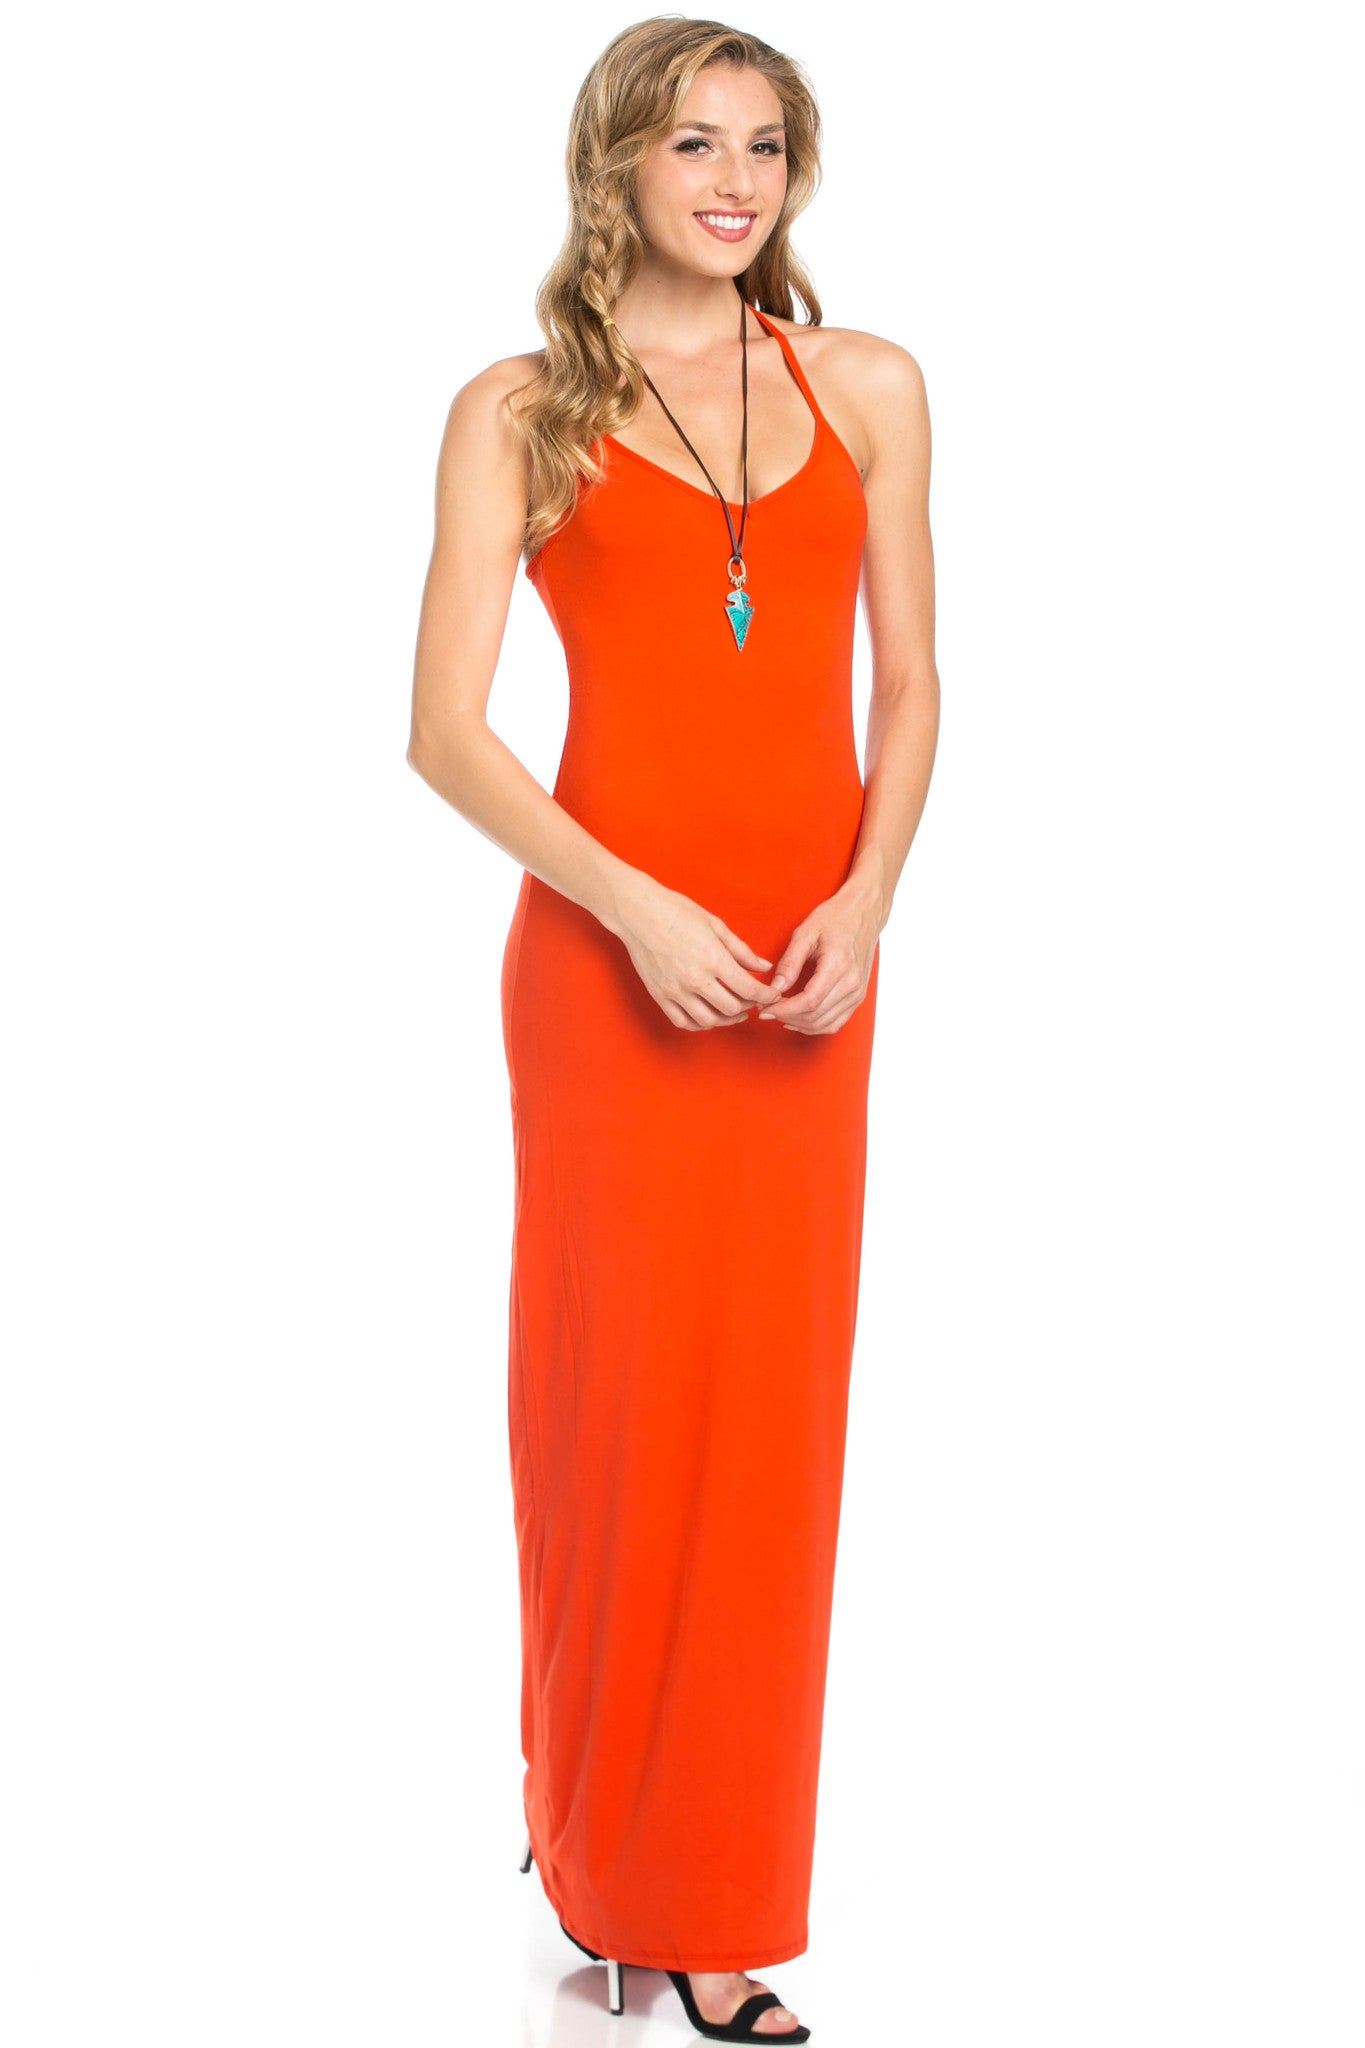 Micro Suede Tomato Maxi Dress - Dresses - My Yuccie - 2